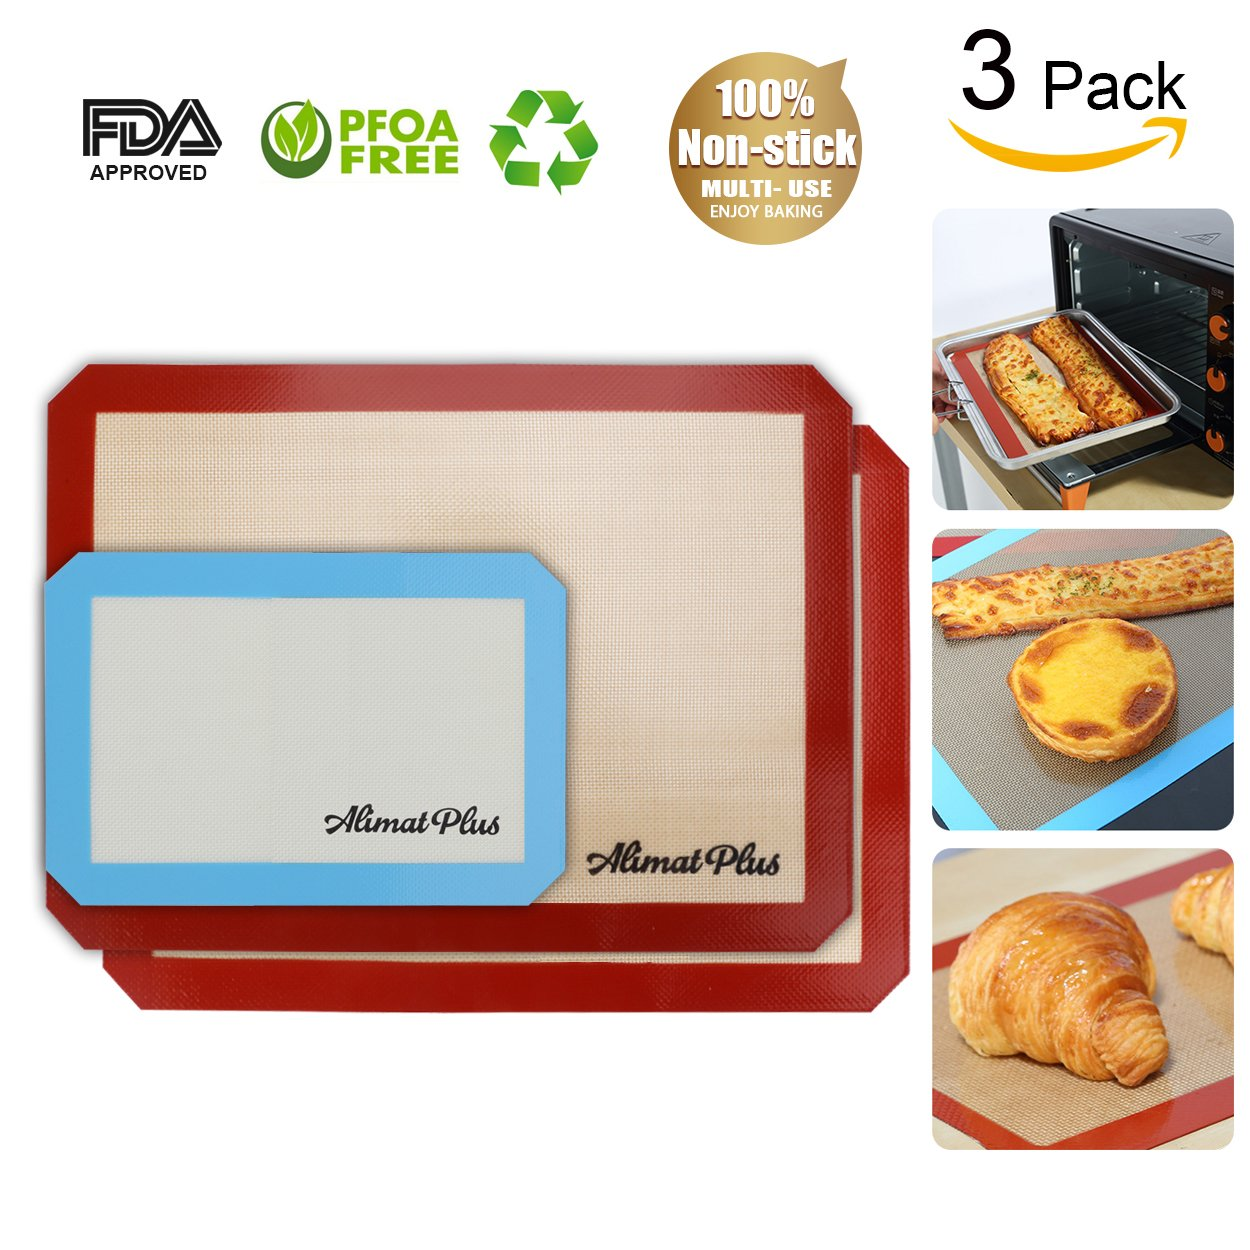 Alimat Plus Silicon Baking mat Cookie Sheet Non Stick Dishwasher Safe Reusable